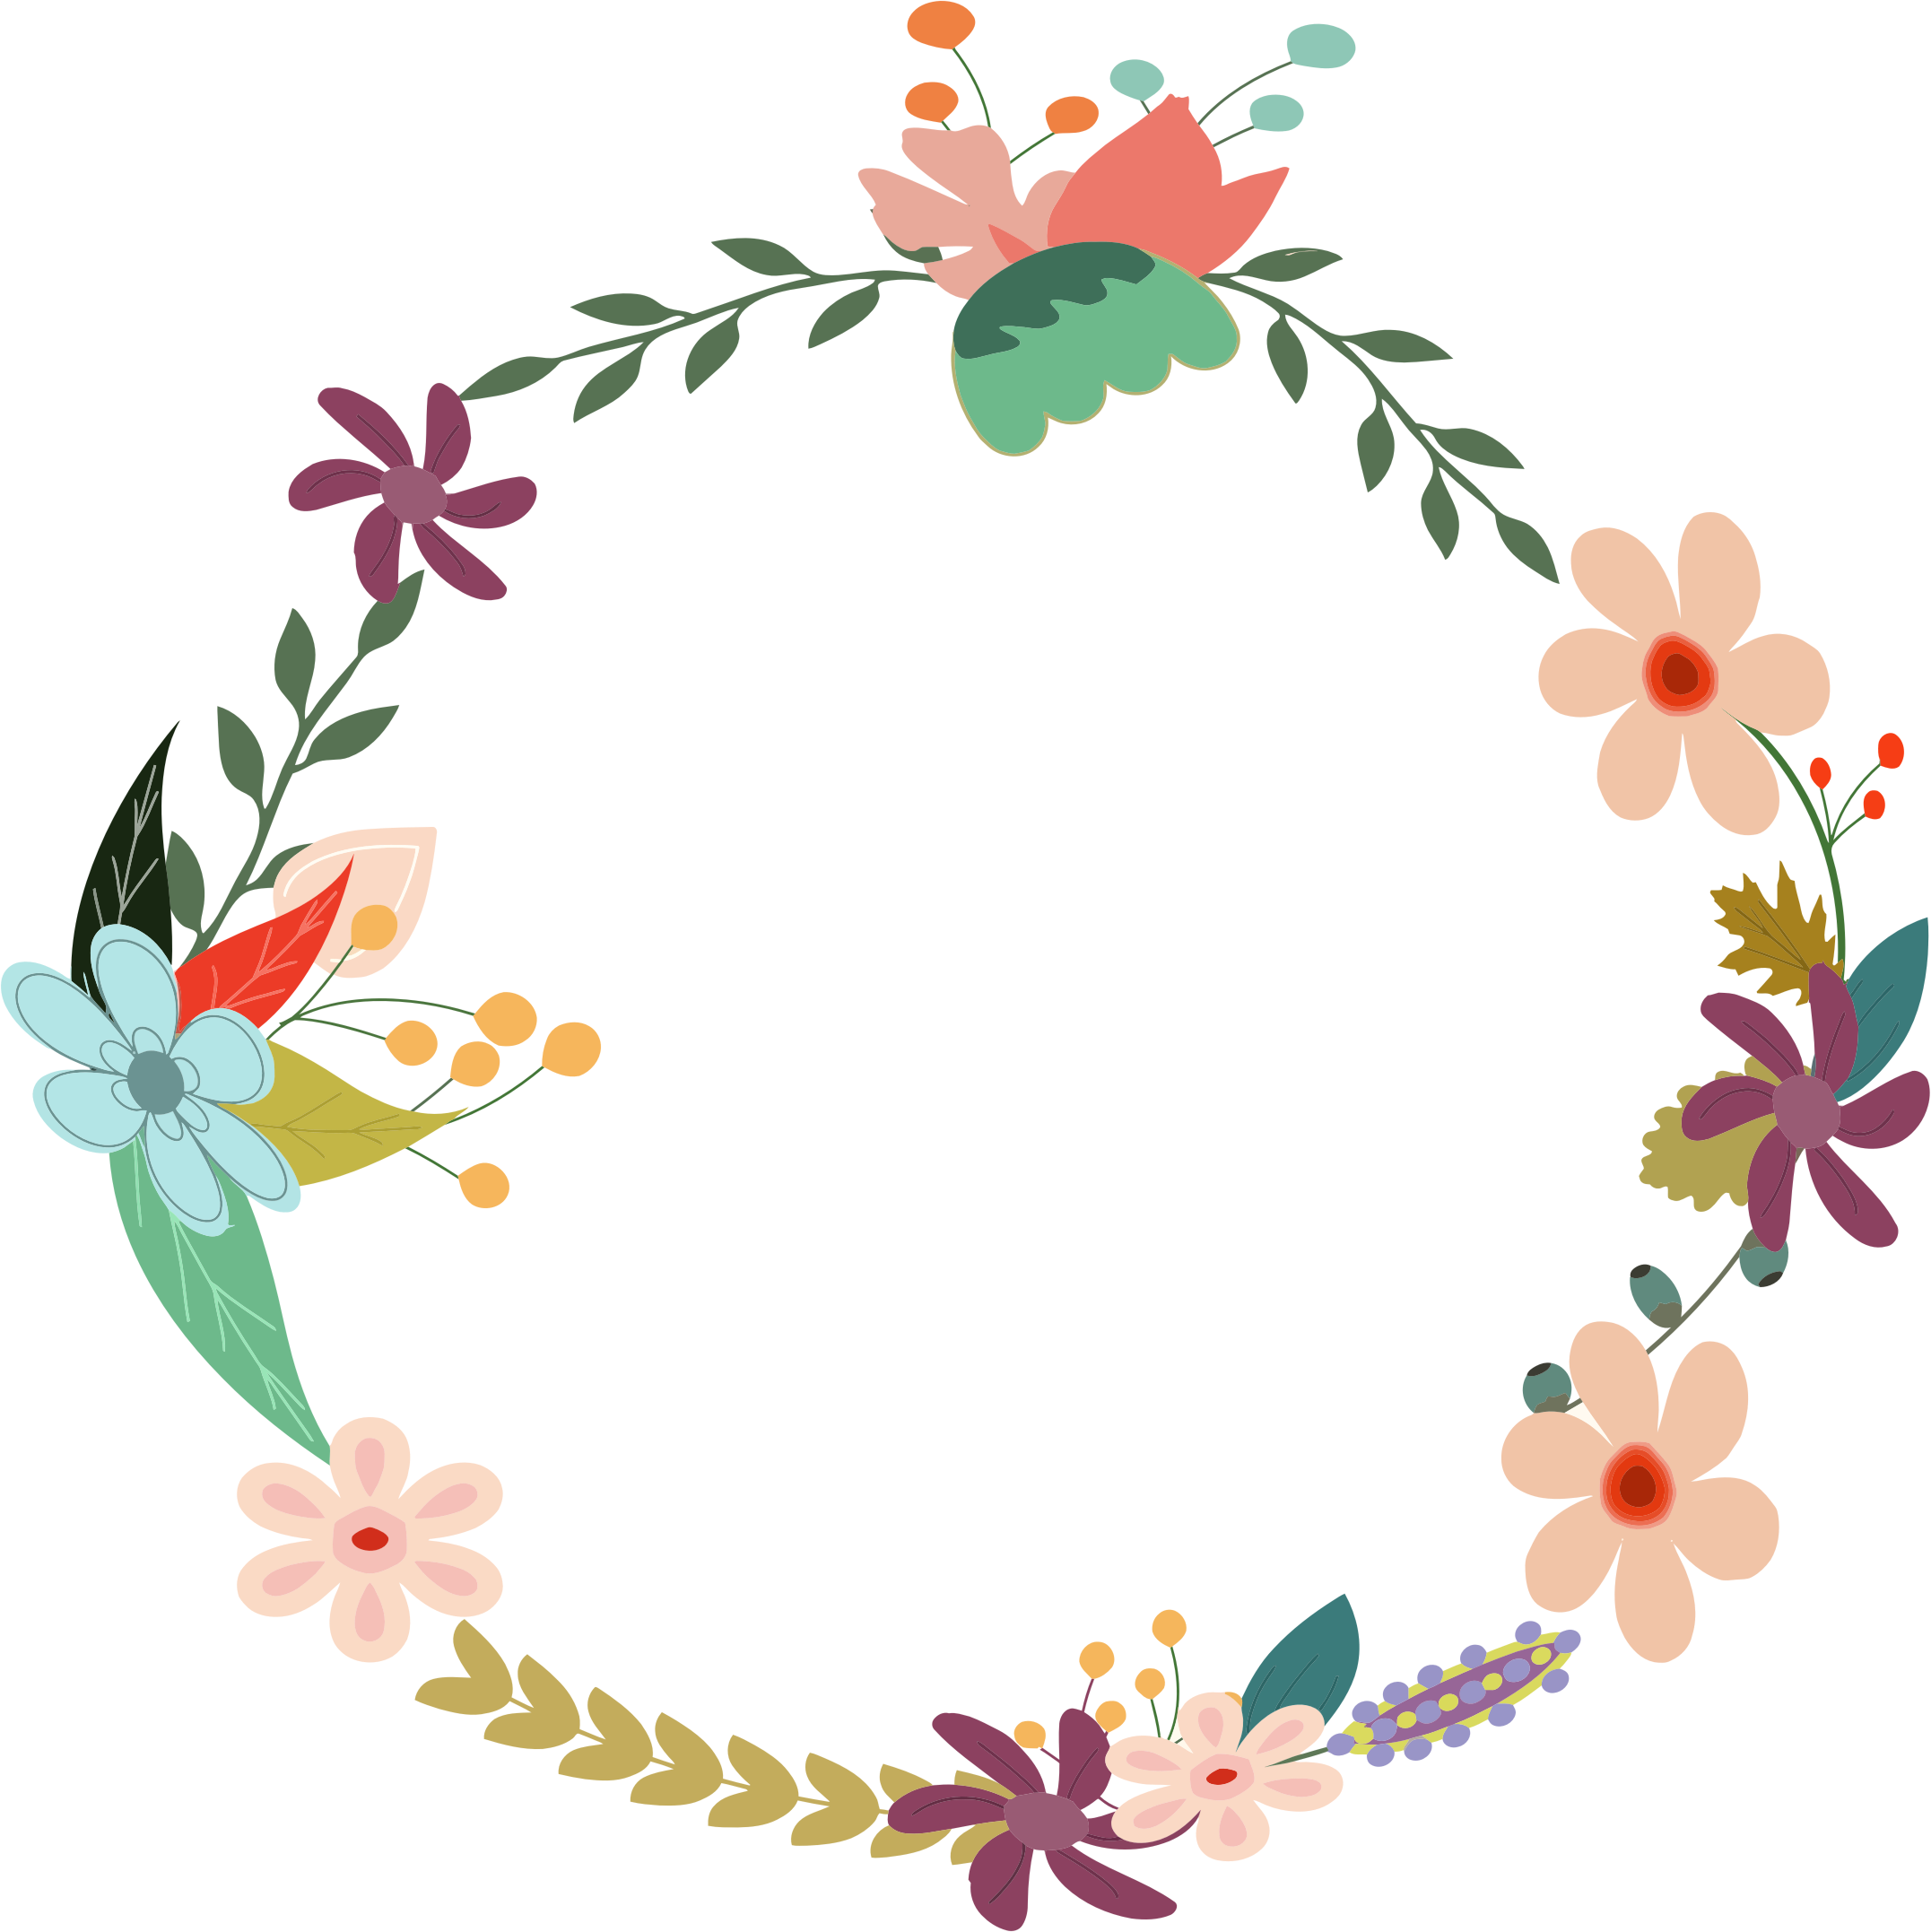 svg royalty free stock Vintage floral wreath by. Brunch clipart watercolor